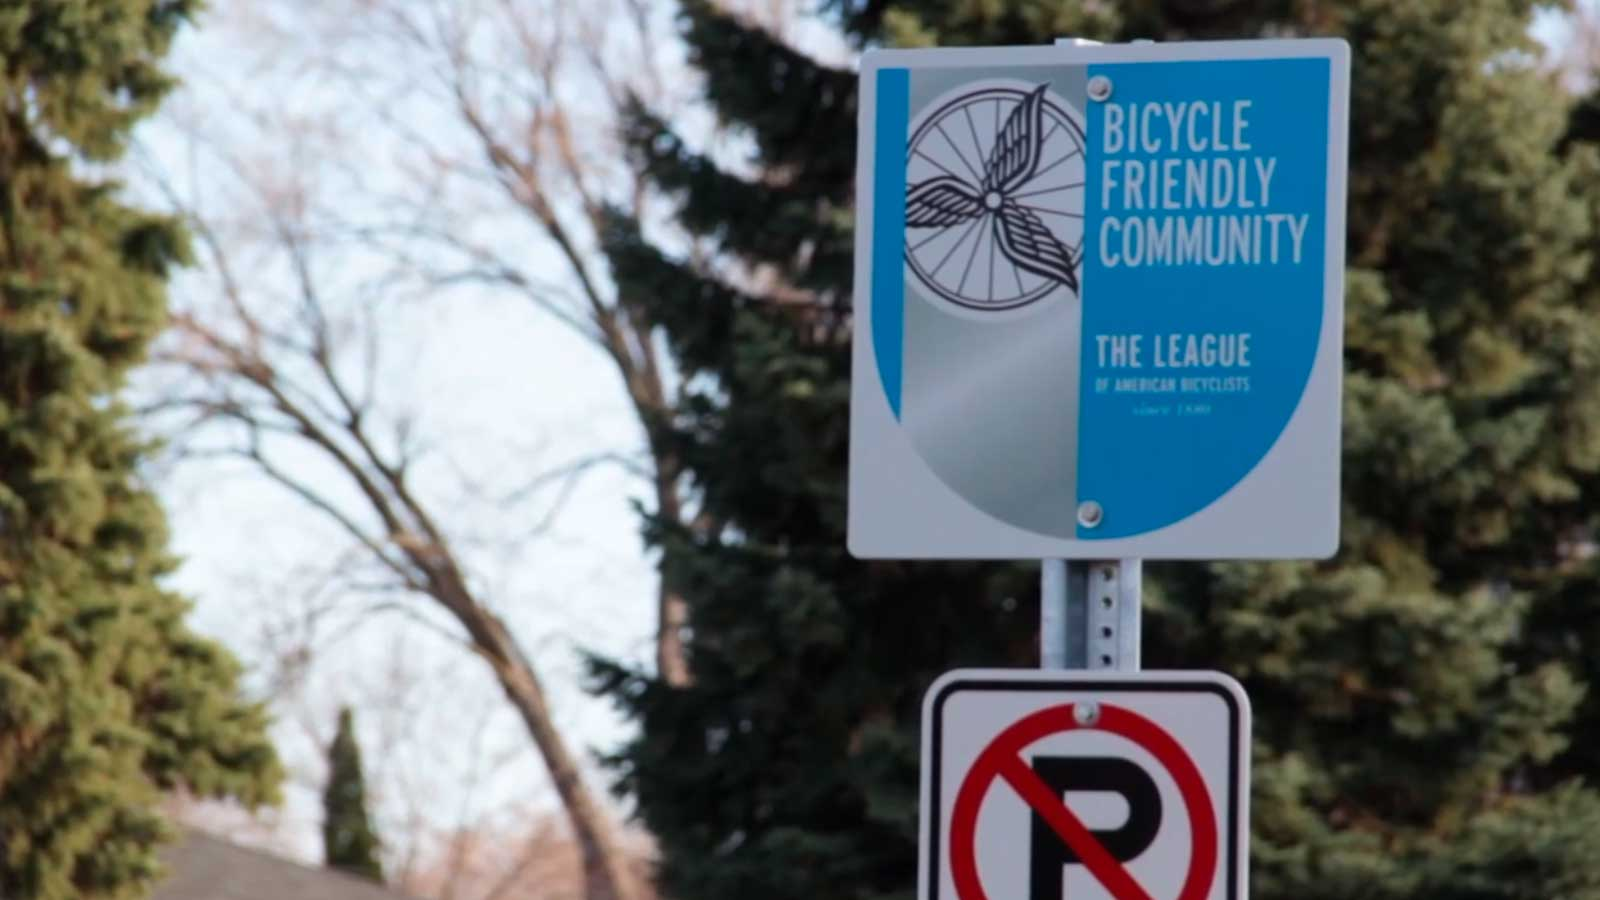 A Bicycle Friendly Community